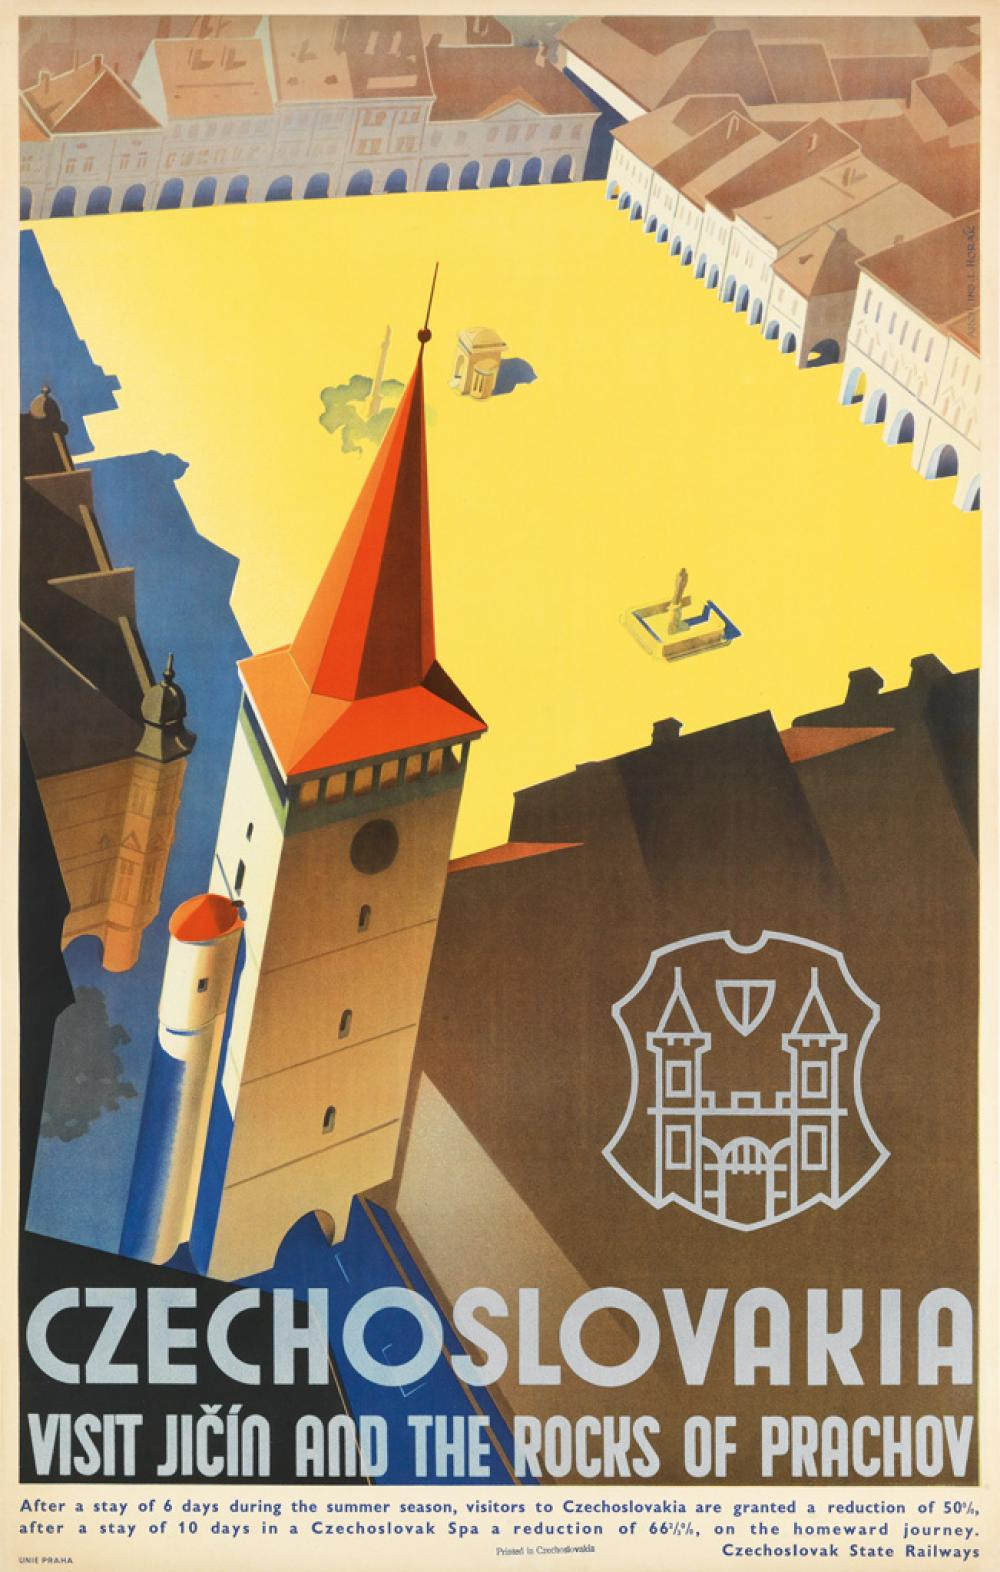 LADISLAV HORAK (1904-?). CZECHOSLOVAKIA / VISIT JICÍN AND THE ROCKS OF PRACHOV. Circa 1930. 39x24 inches, 99x62 cm. Unie, Prague.